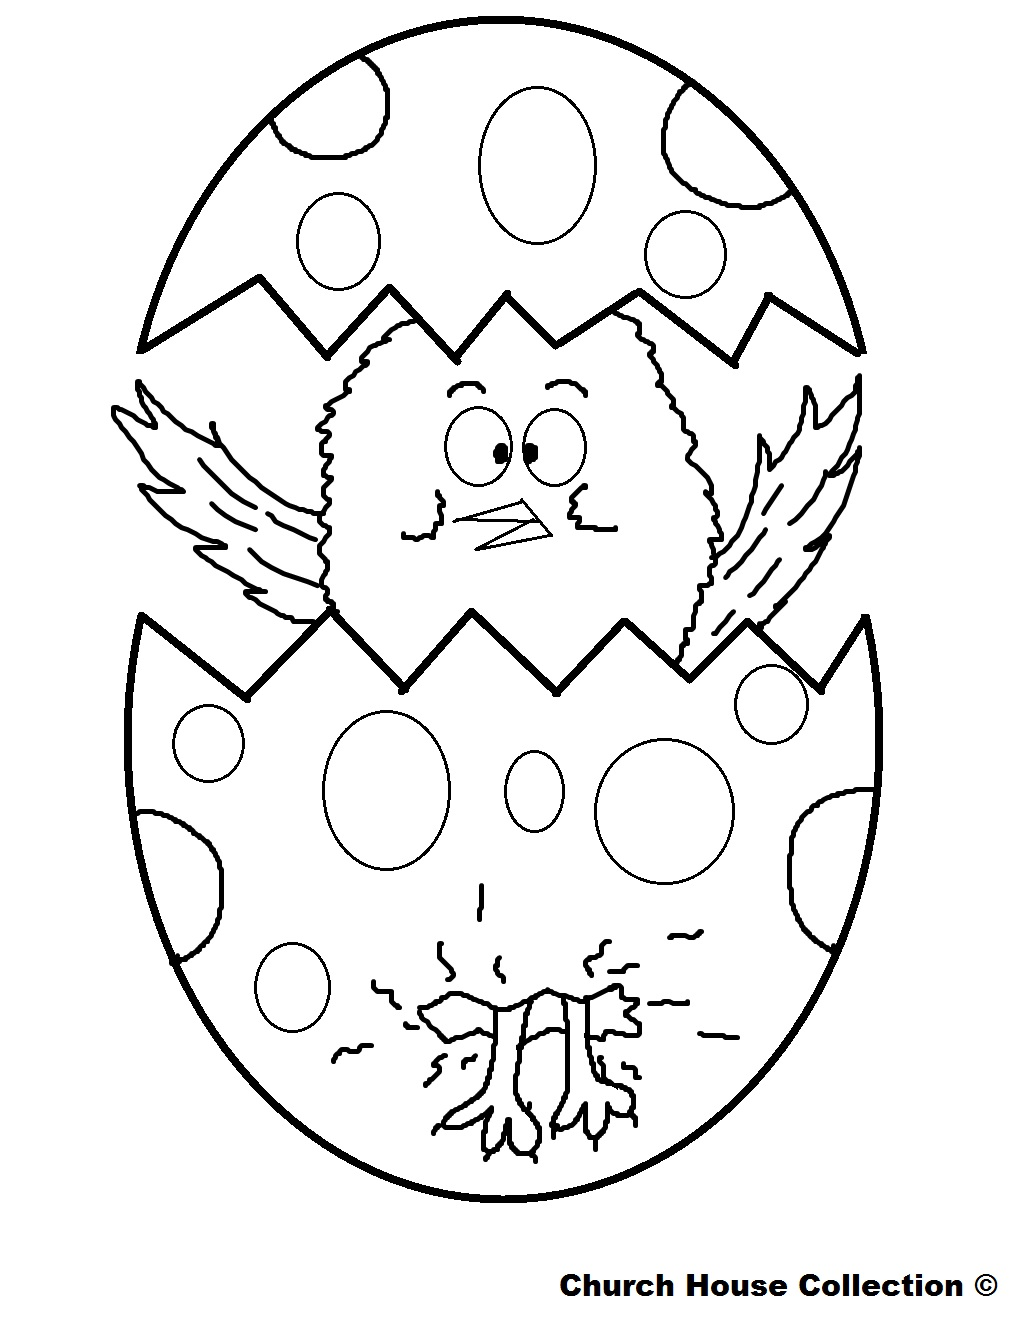 Coloring Pages Easter : Church house collection march